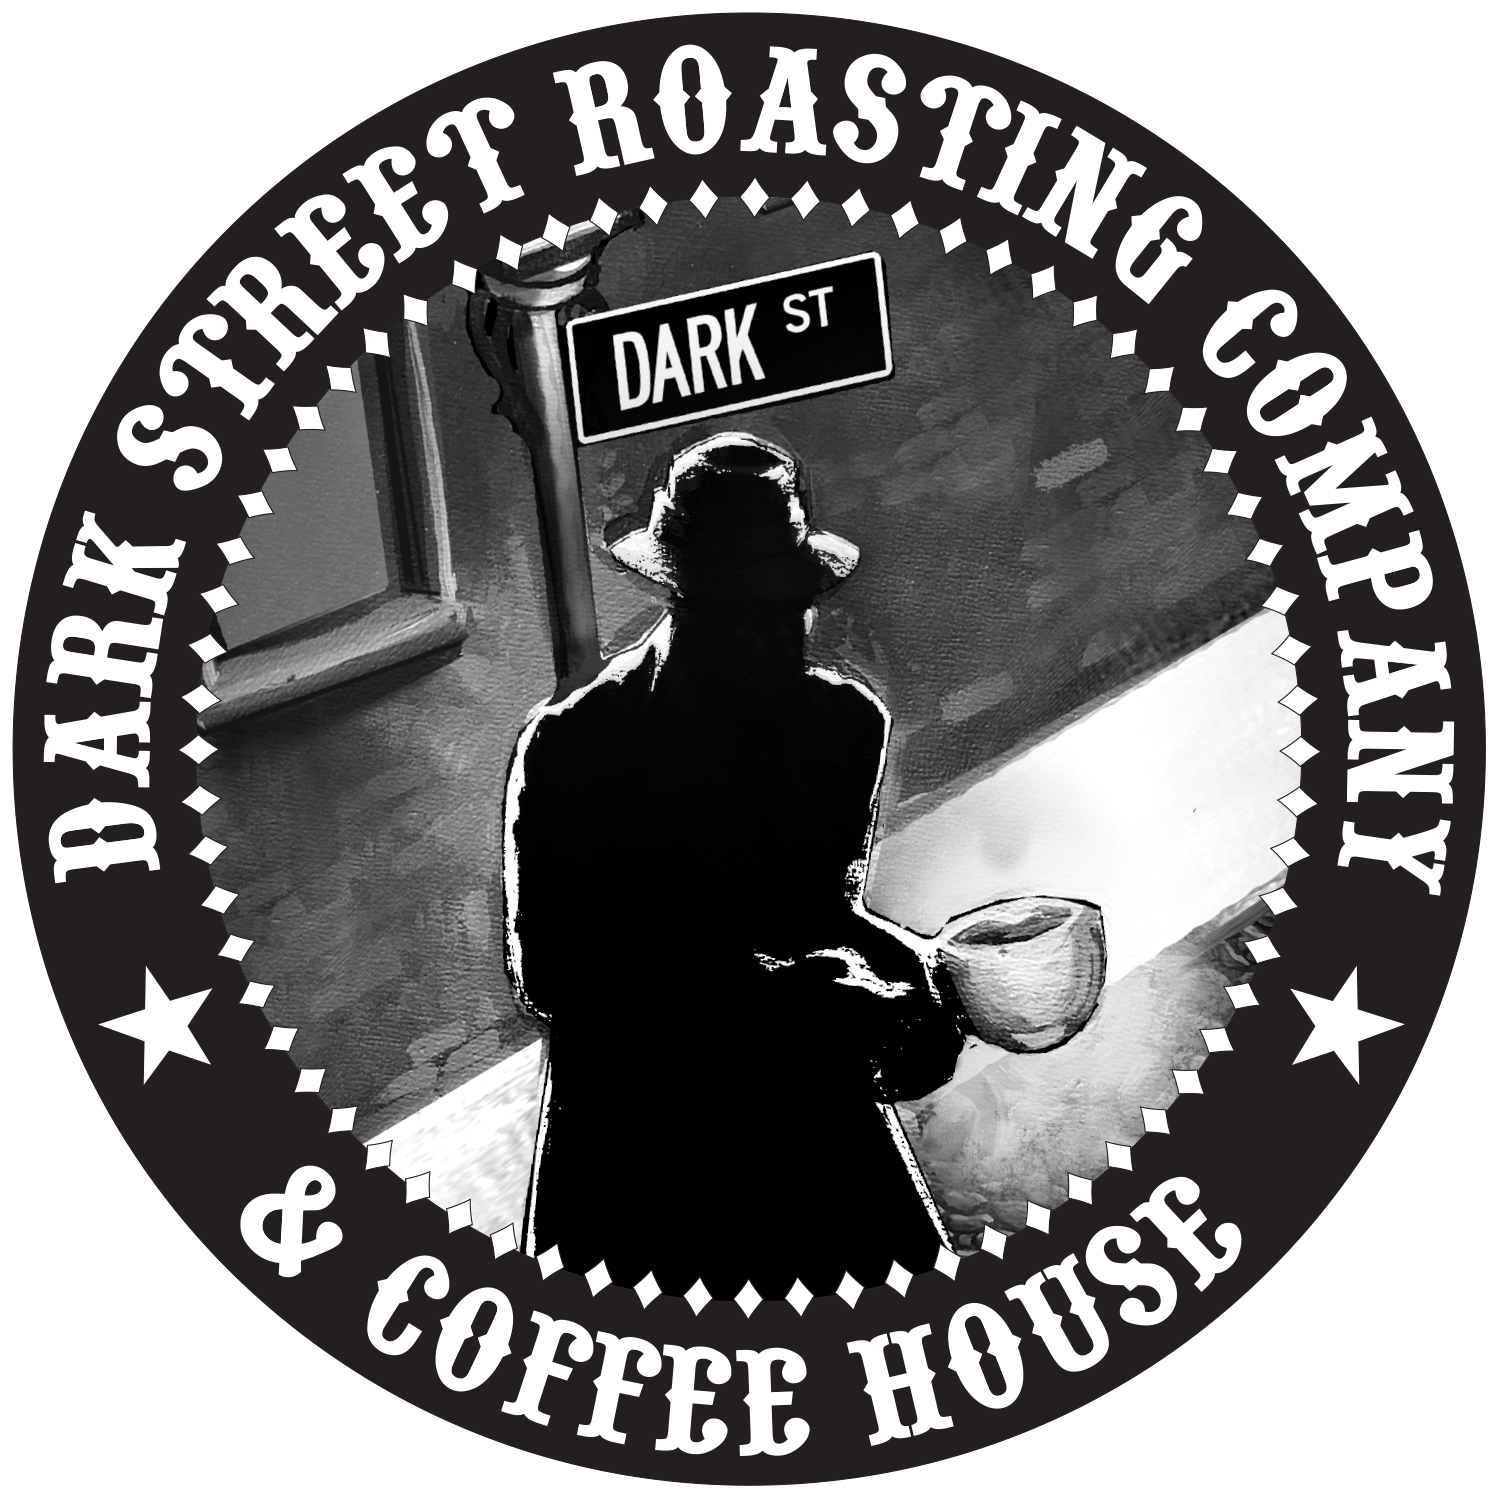 Dark Street Coffee Logo BIG.png